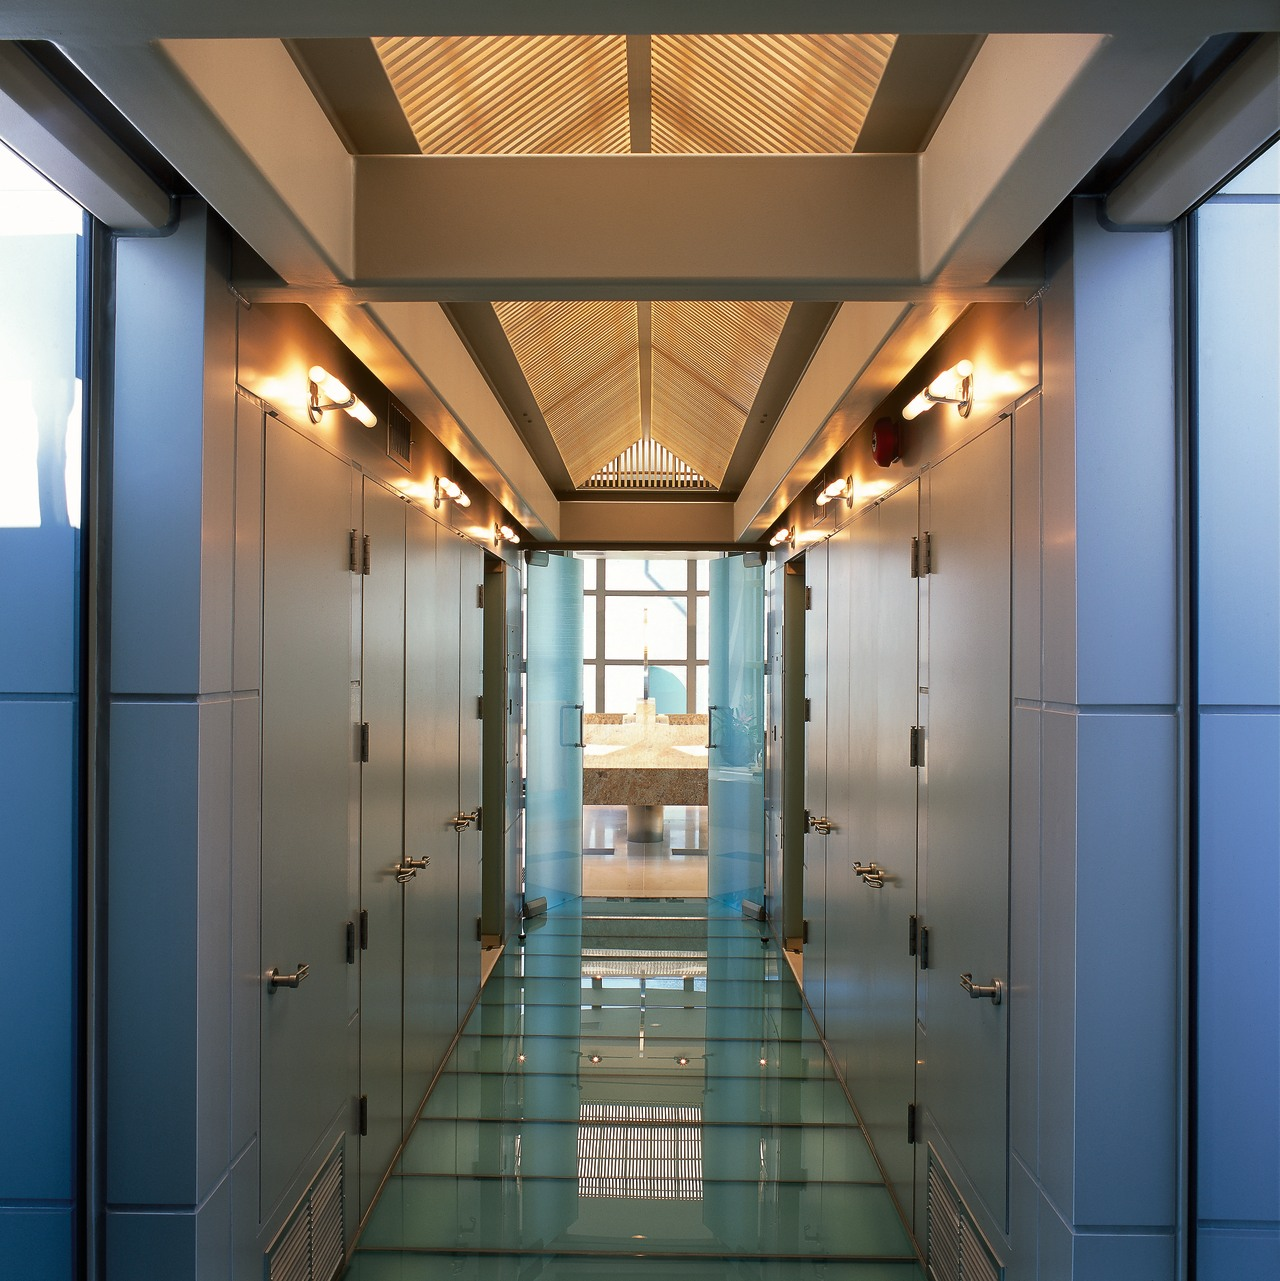 A glass-floored corridor leading to the master bathroom ceiling, daylighting, interior design